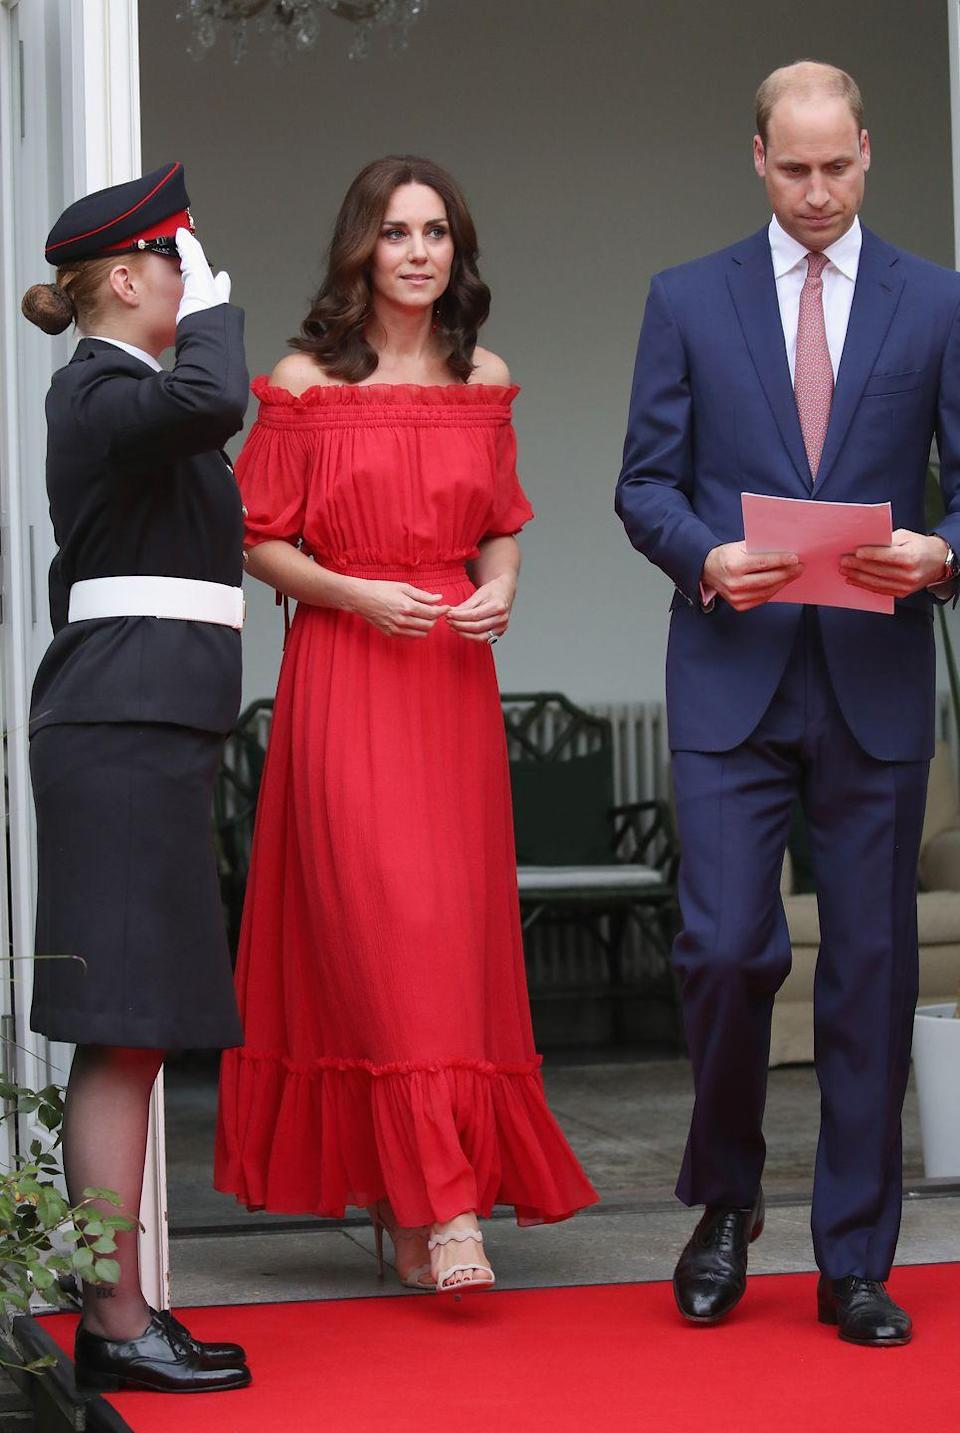 """<p>The Duchess wore a maxi dress by Alexander McQueen <a href=""""https://www.townandcountrymag.com/society/tradition/g10295873/kate-william-royal-family-tour-germany-poland-2017/"""" rel=""""nofollow noopener"""" target=""""_blank"""" data-ylk=""""slk:to a garden party held in the Queen's honor"""" class=""""link rapid-noclick-resp"""">to a garden party held in the Queen's honor</a> while in Berlin during the royal tour. She paired the summery dress with scalloped sandals by Prada. </p>"""